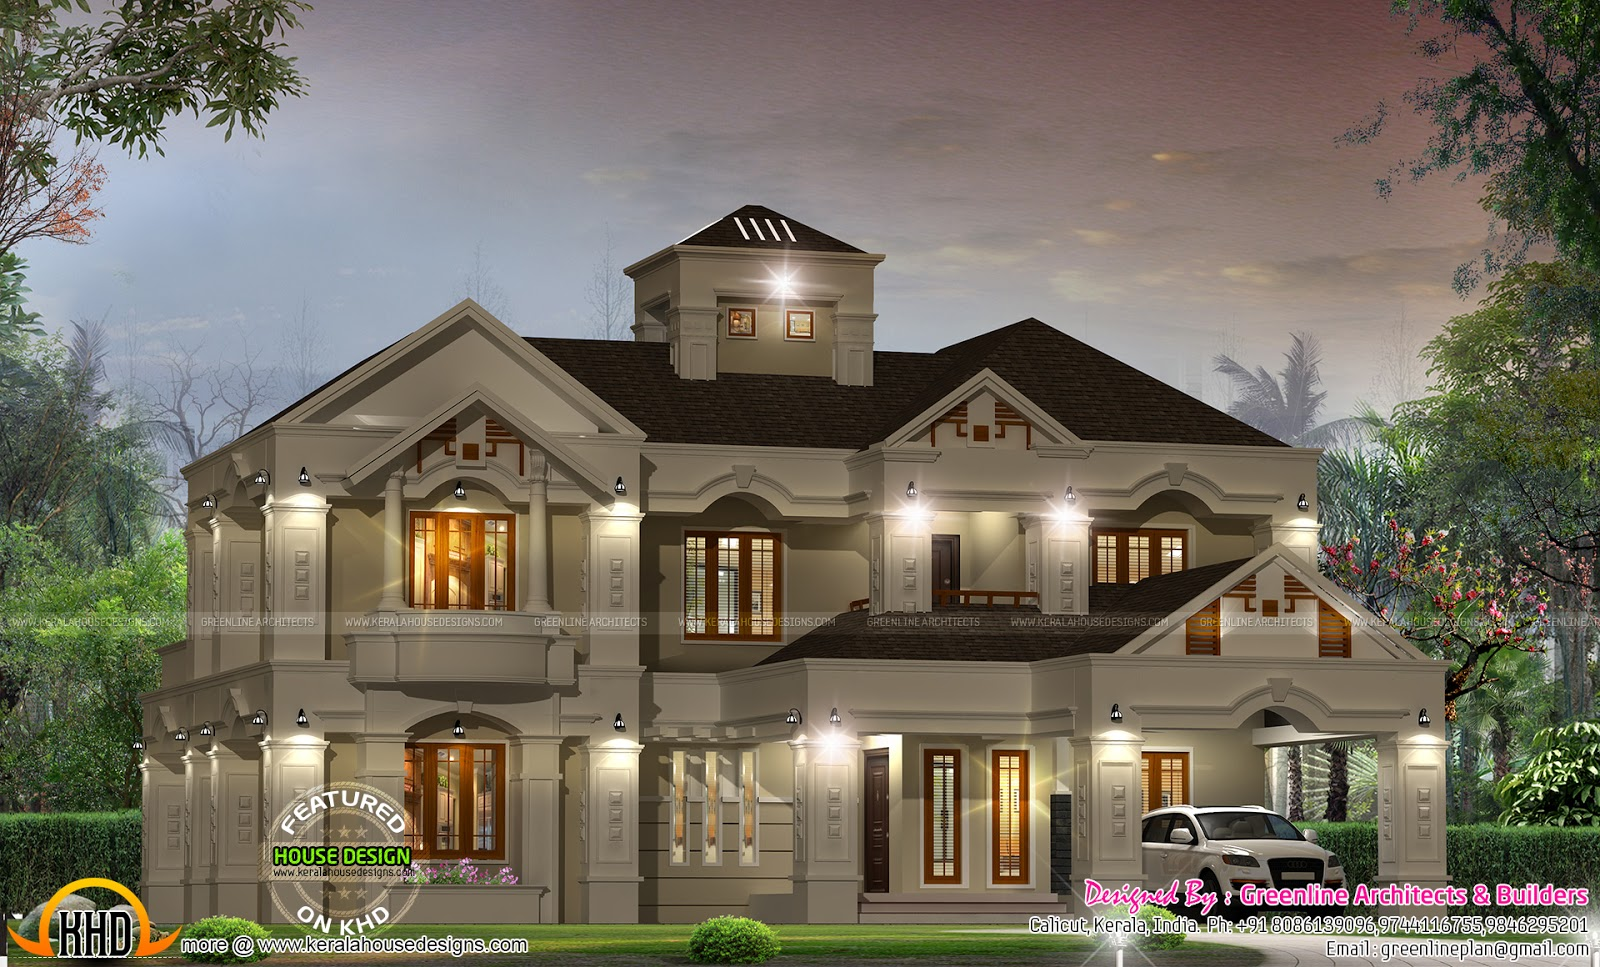 Luxury villa design in kerala kerala home design and for Luxury style house plans